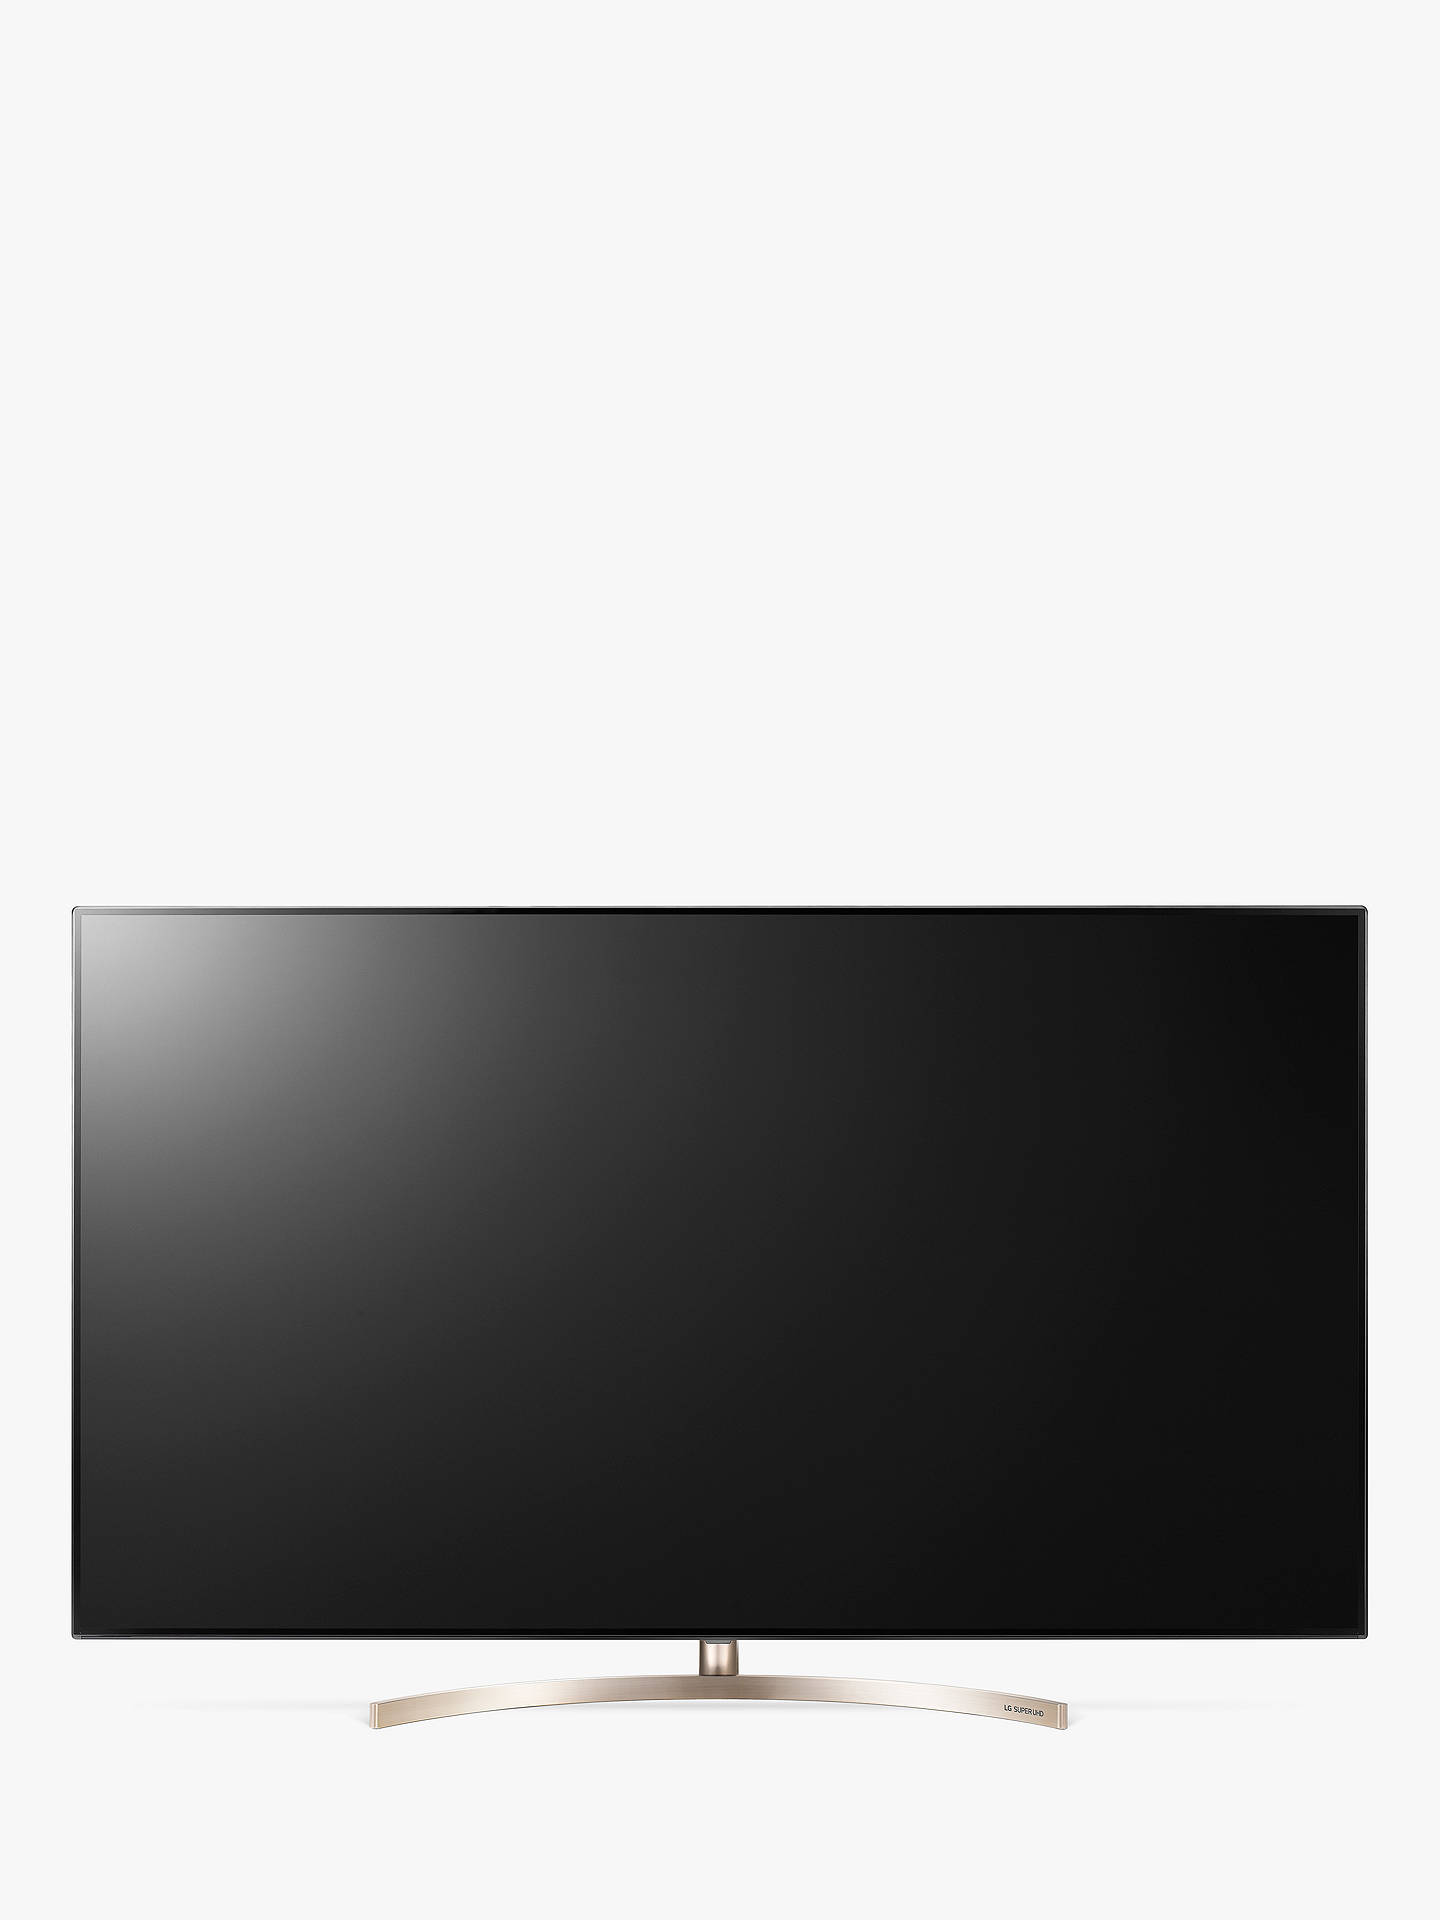 LG 55SK9500PLA LED HDR Super UHD 4K Ultra HD Smart TV, 55